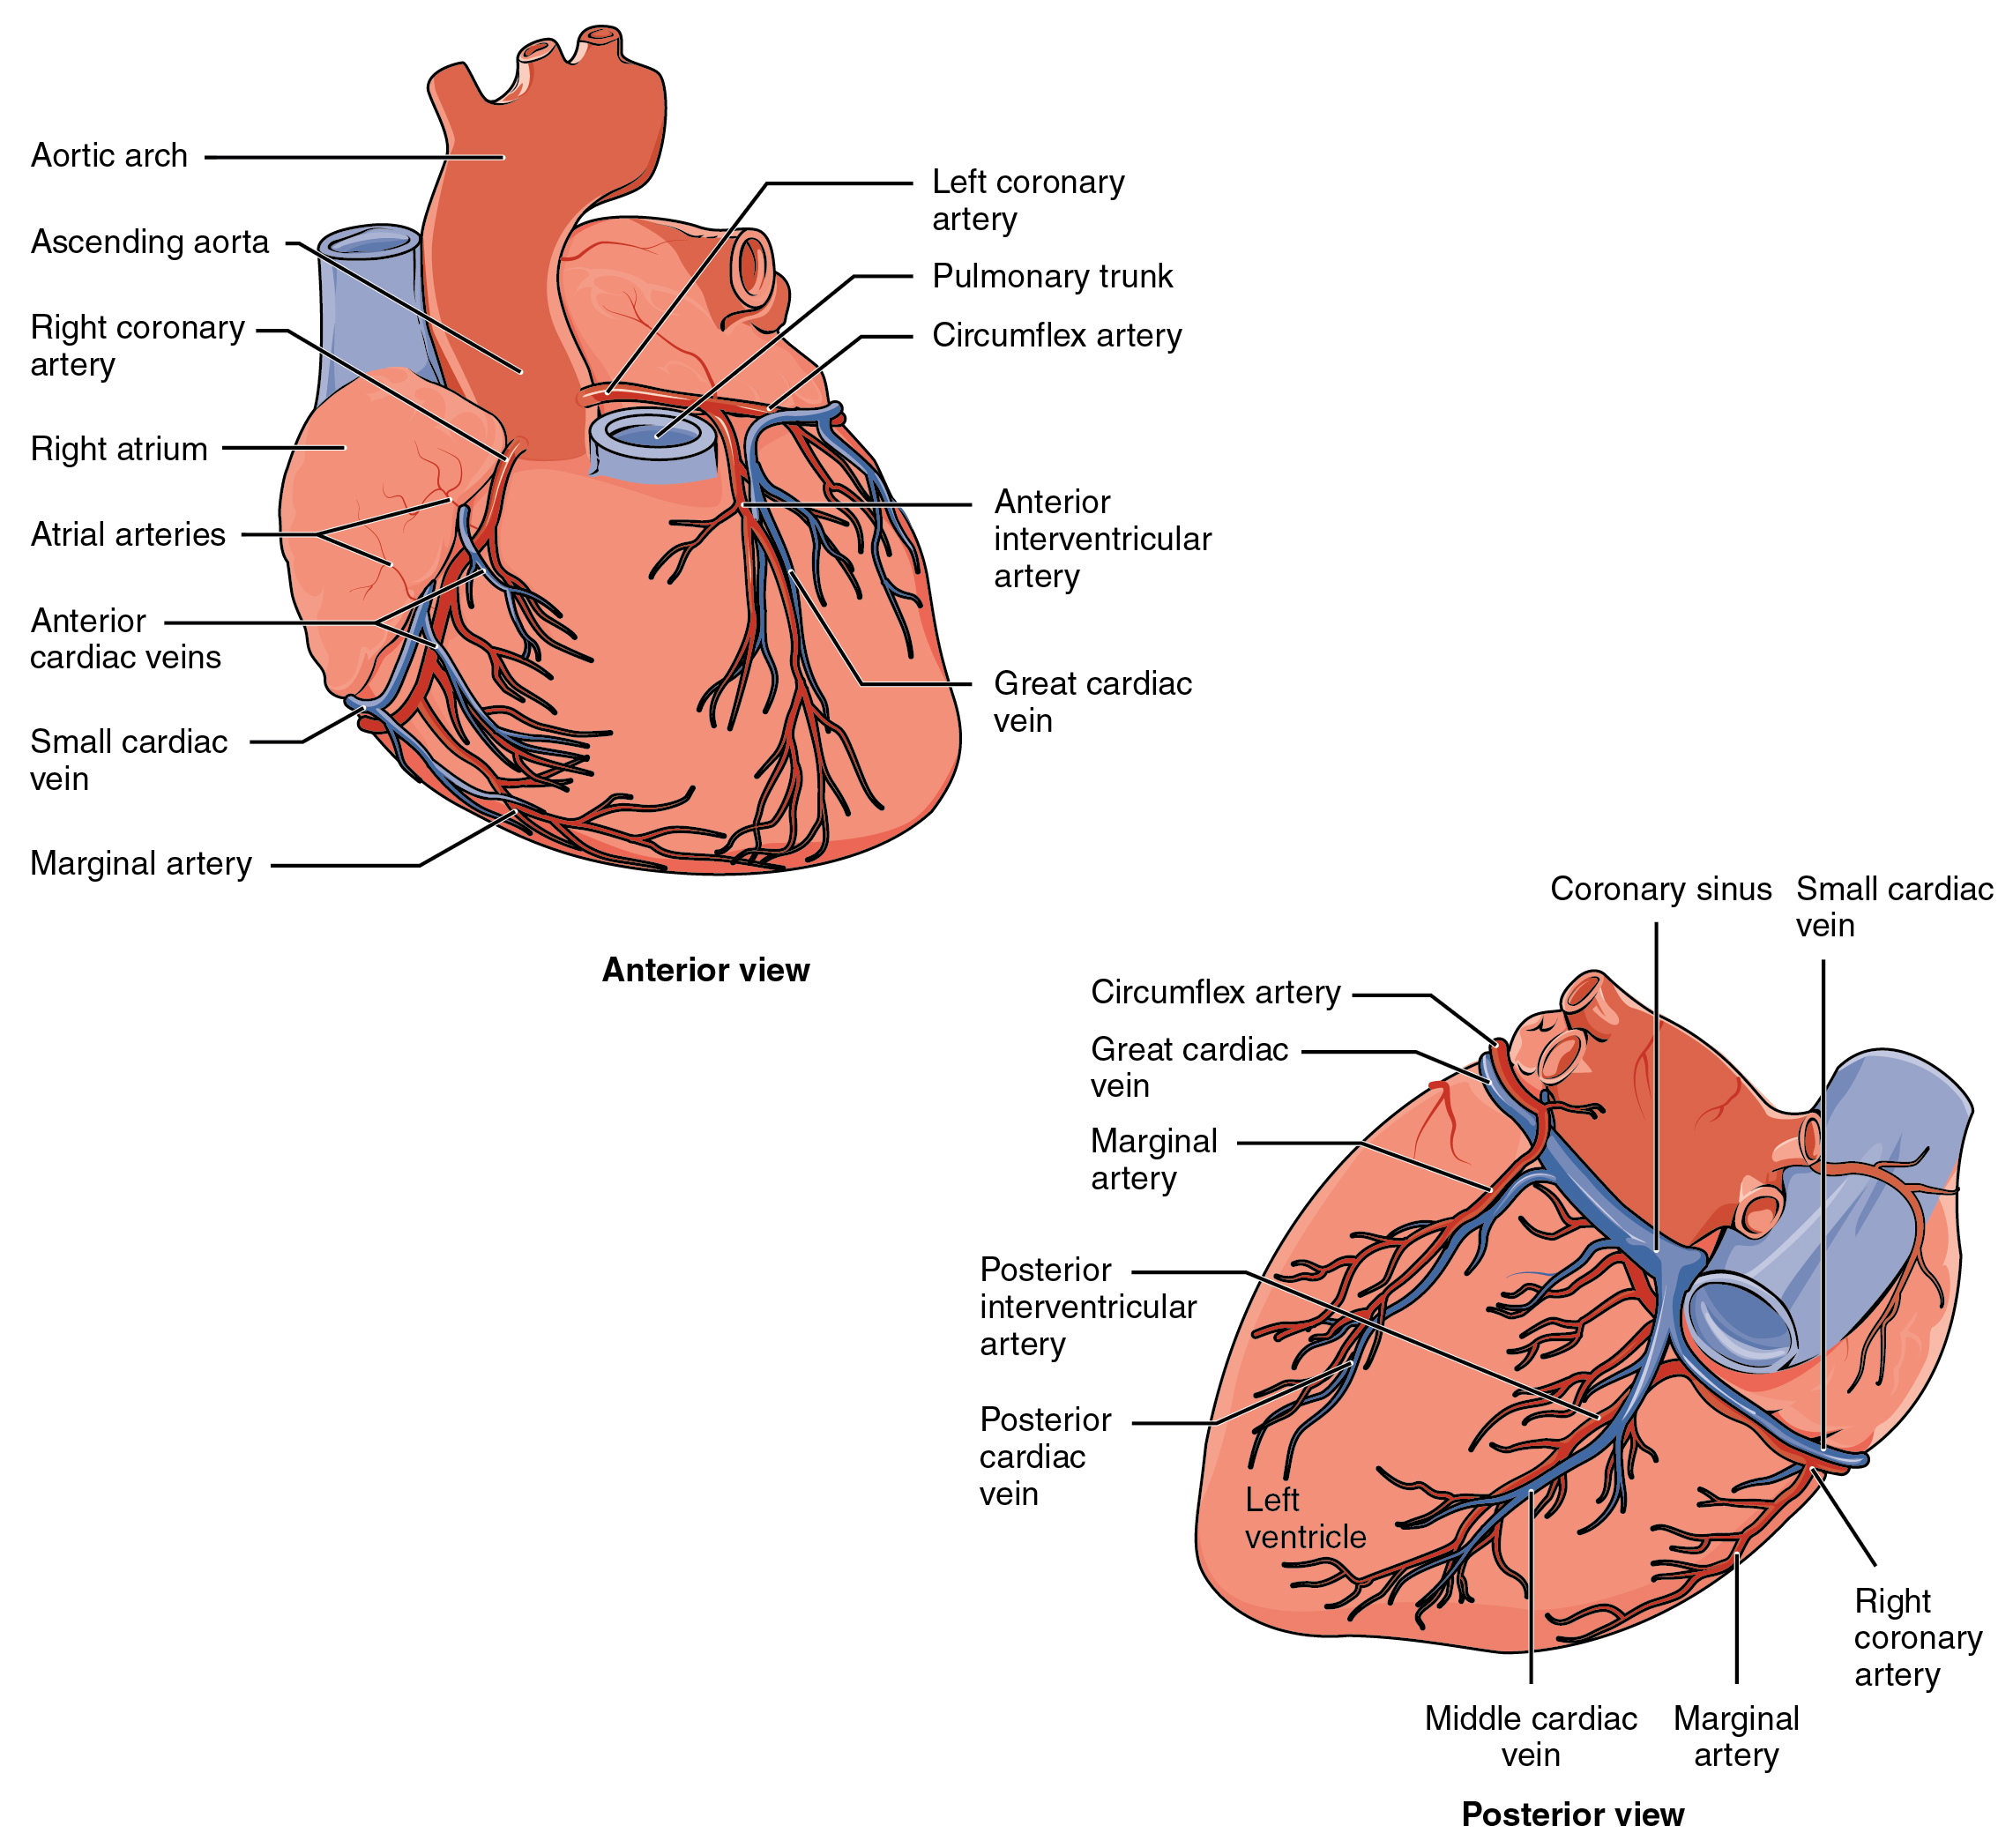 Heart Anatomy - Grade 11 Biology: Anatomy and Physiology - OpenStax CNX